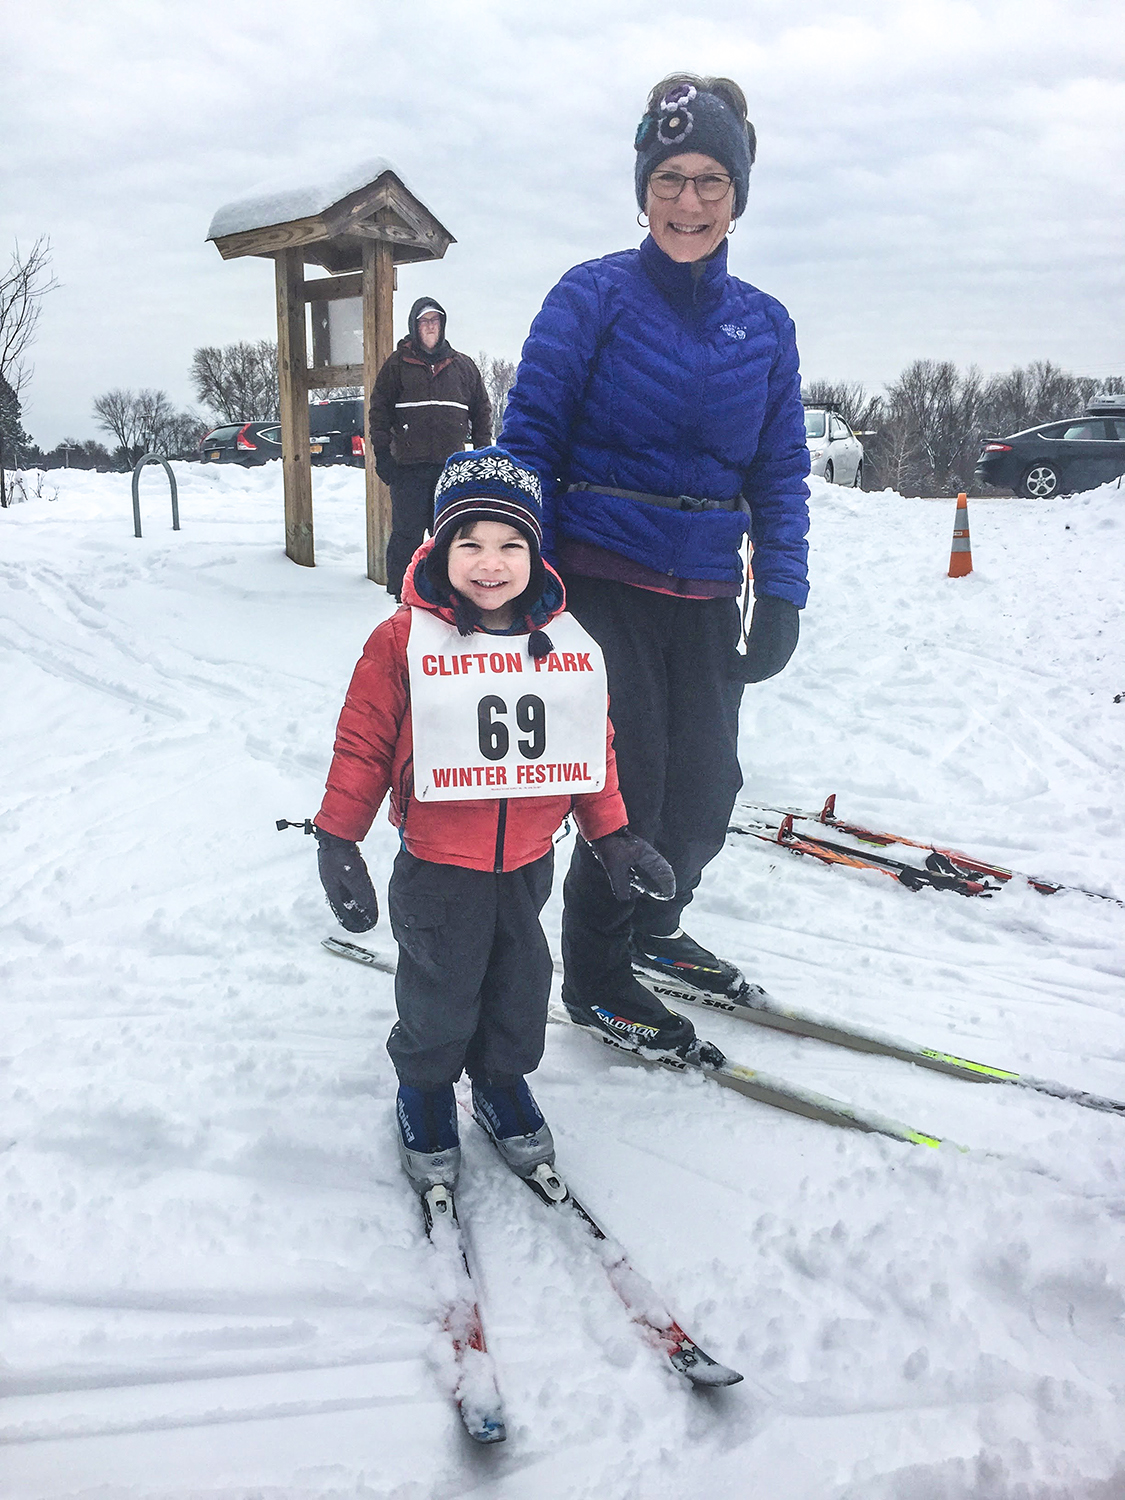 Join Shenendehowa Nordic Club - Get involved and support cross country skiing in our backyard! Adult/family annual membership is $30